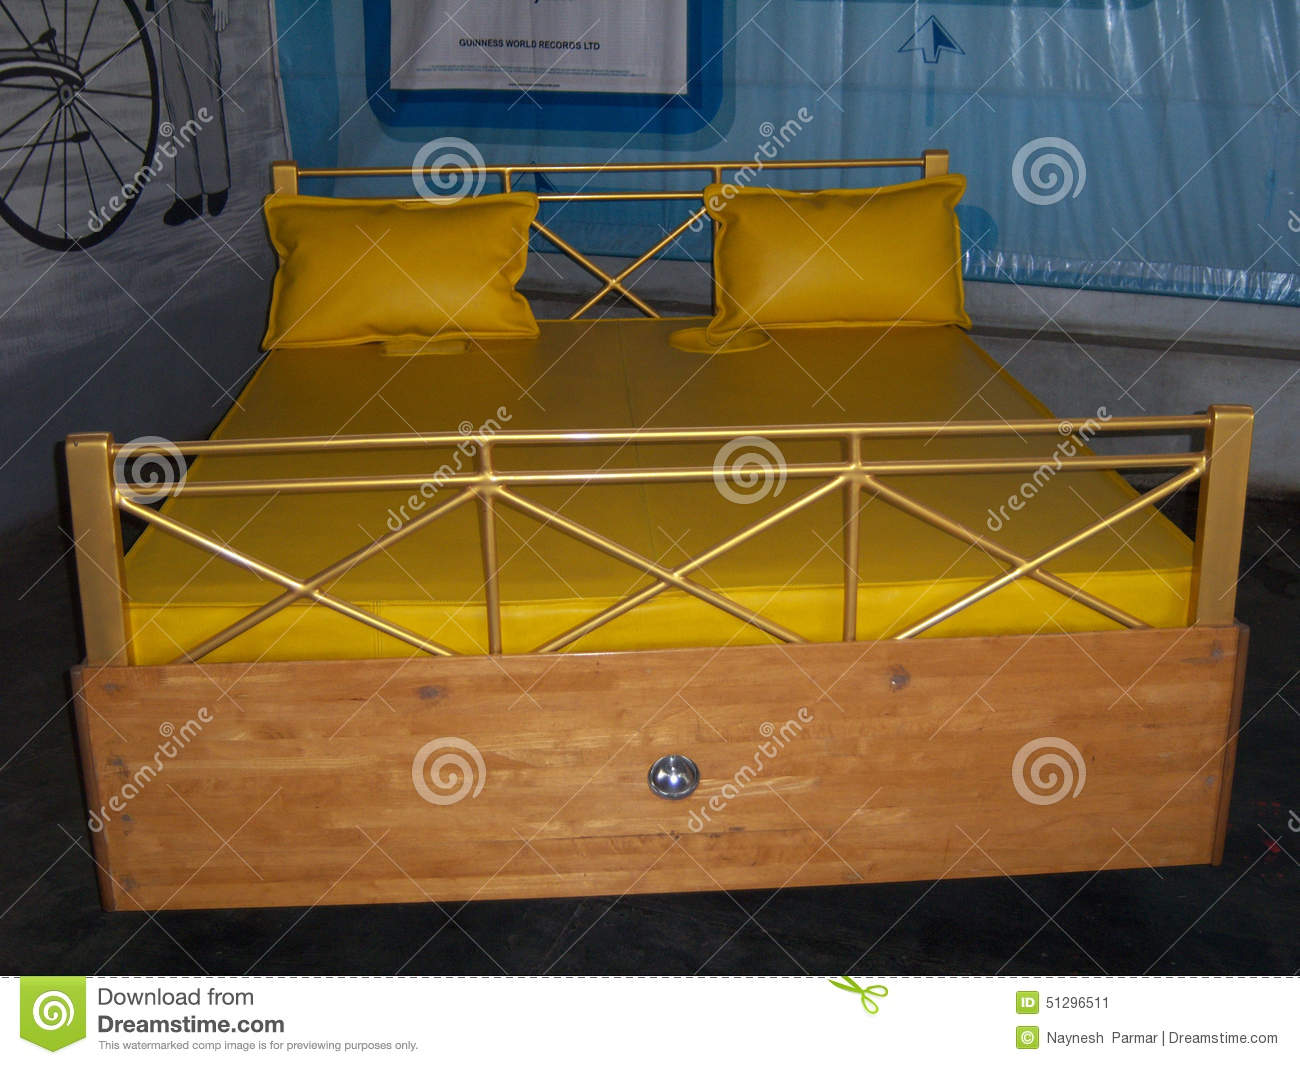 double first base chalk foul line stock photo image 54120999 double bed car at sudha cars museum hyderabad stock image